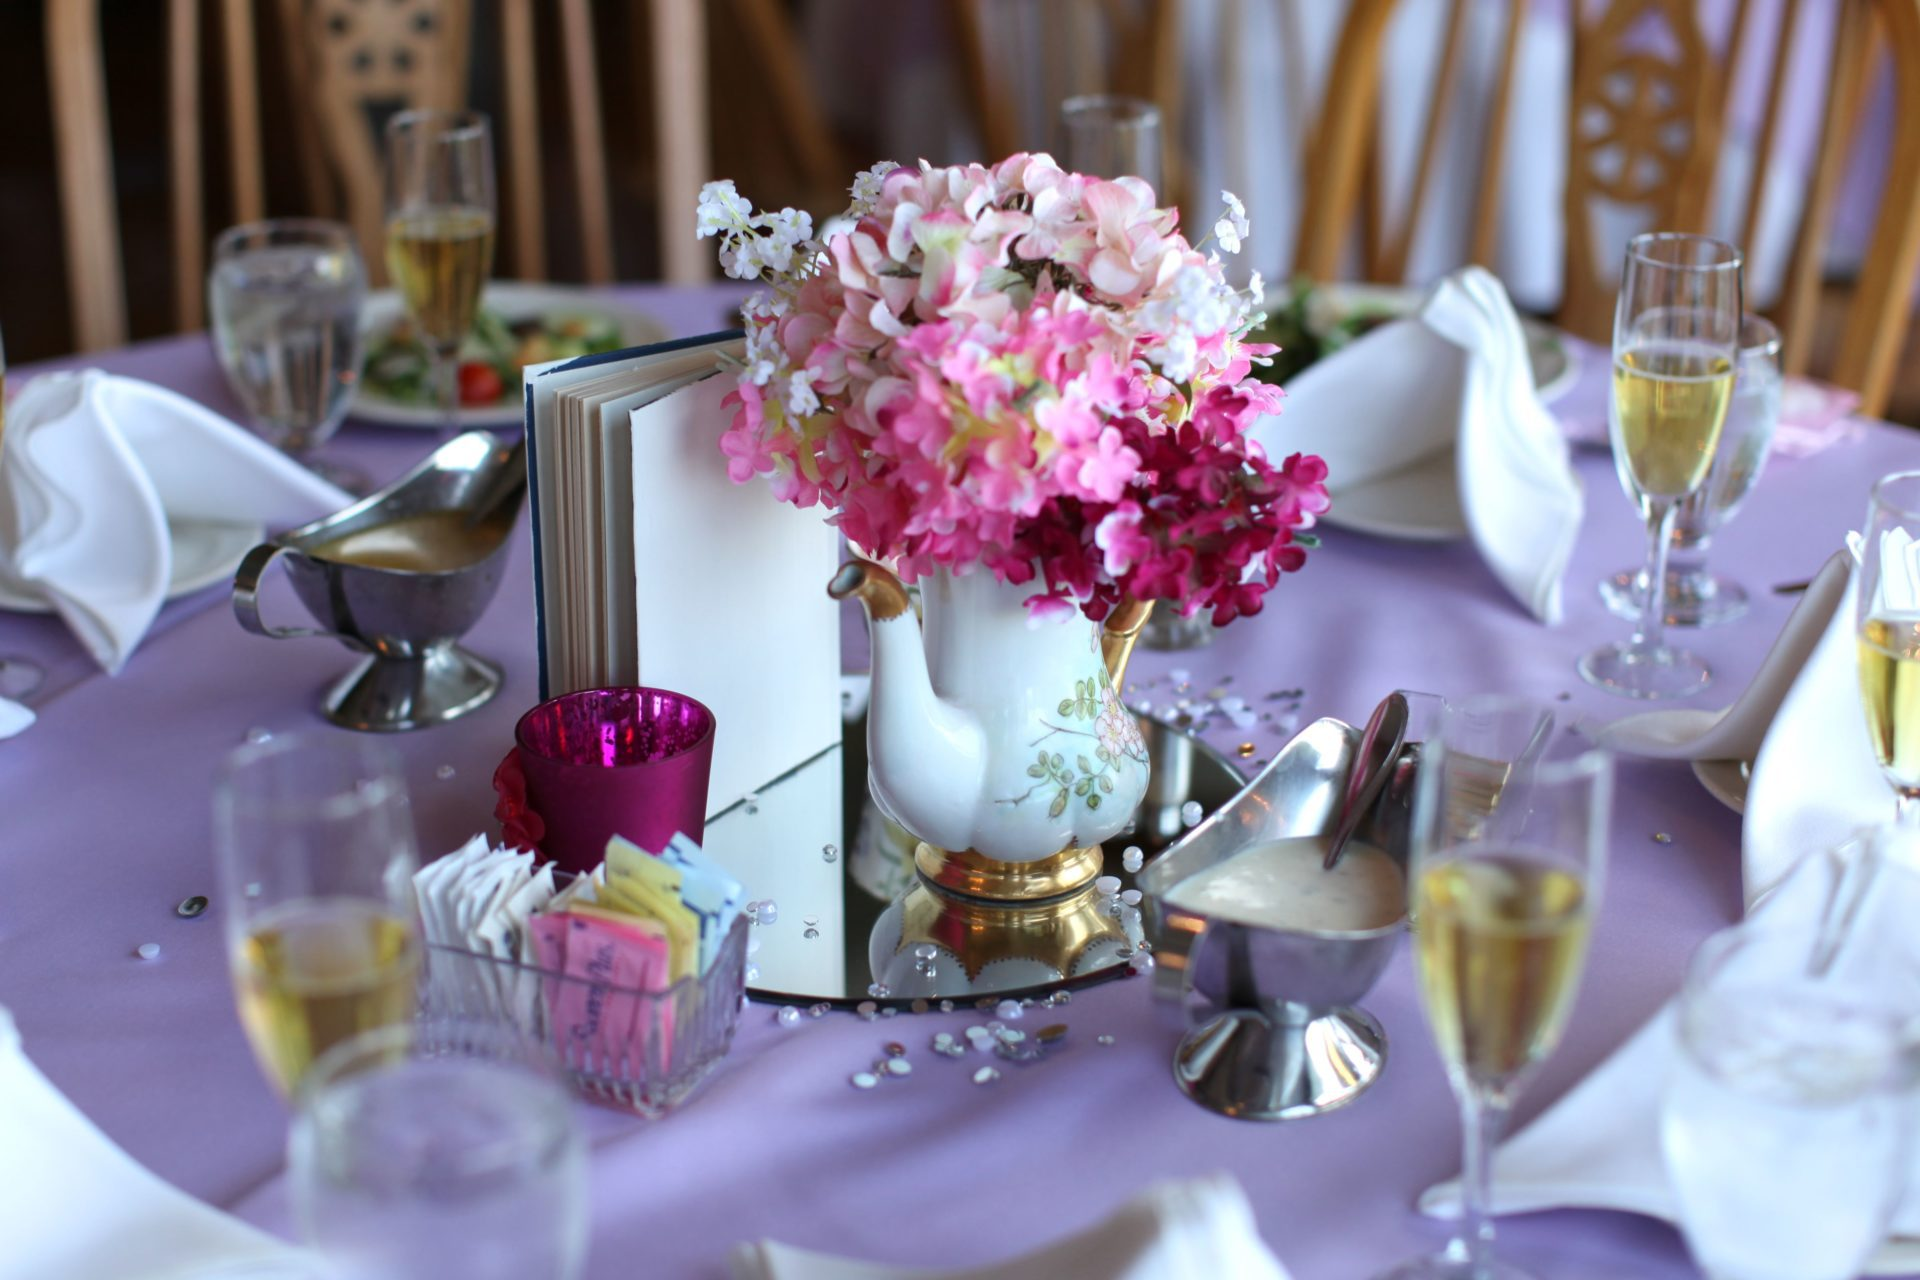 tea party theme wedding centerpiece with tea kettle with flowers